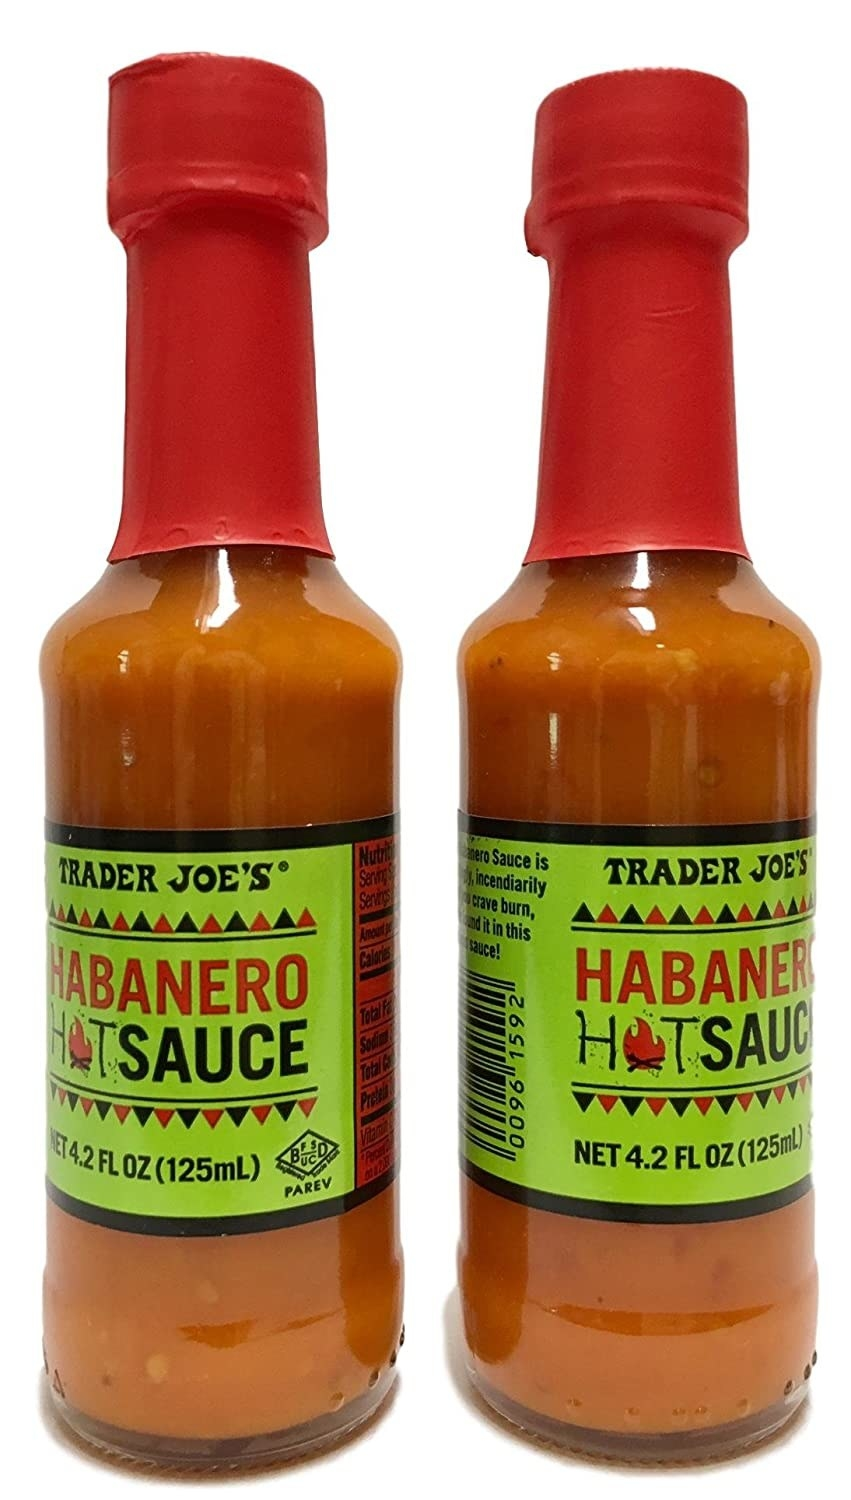 Two bottles of Trader Joe's Habanero Hot Sauce